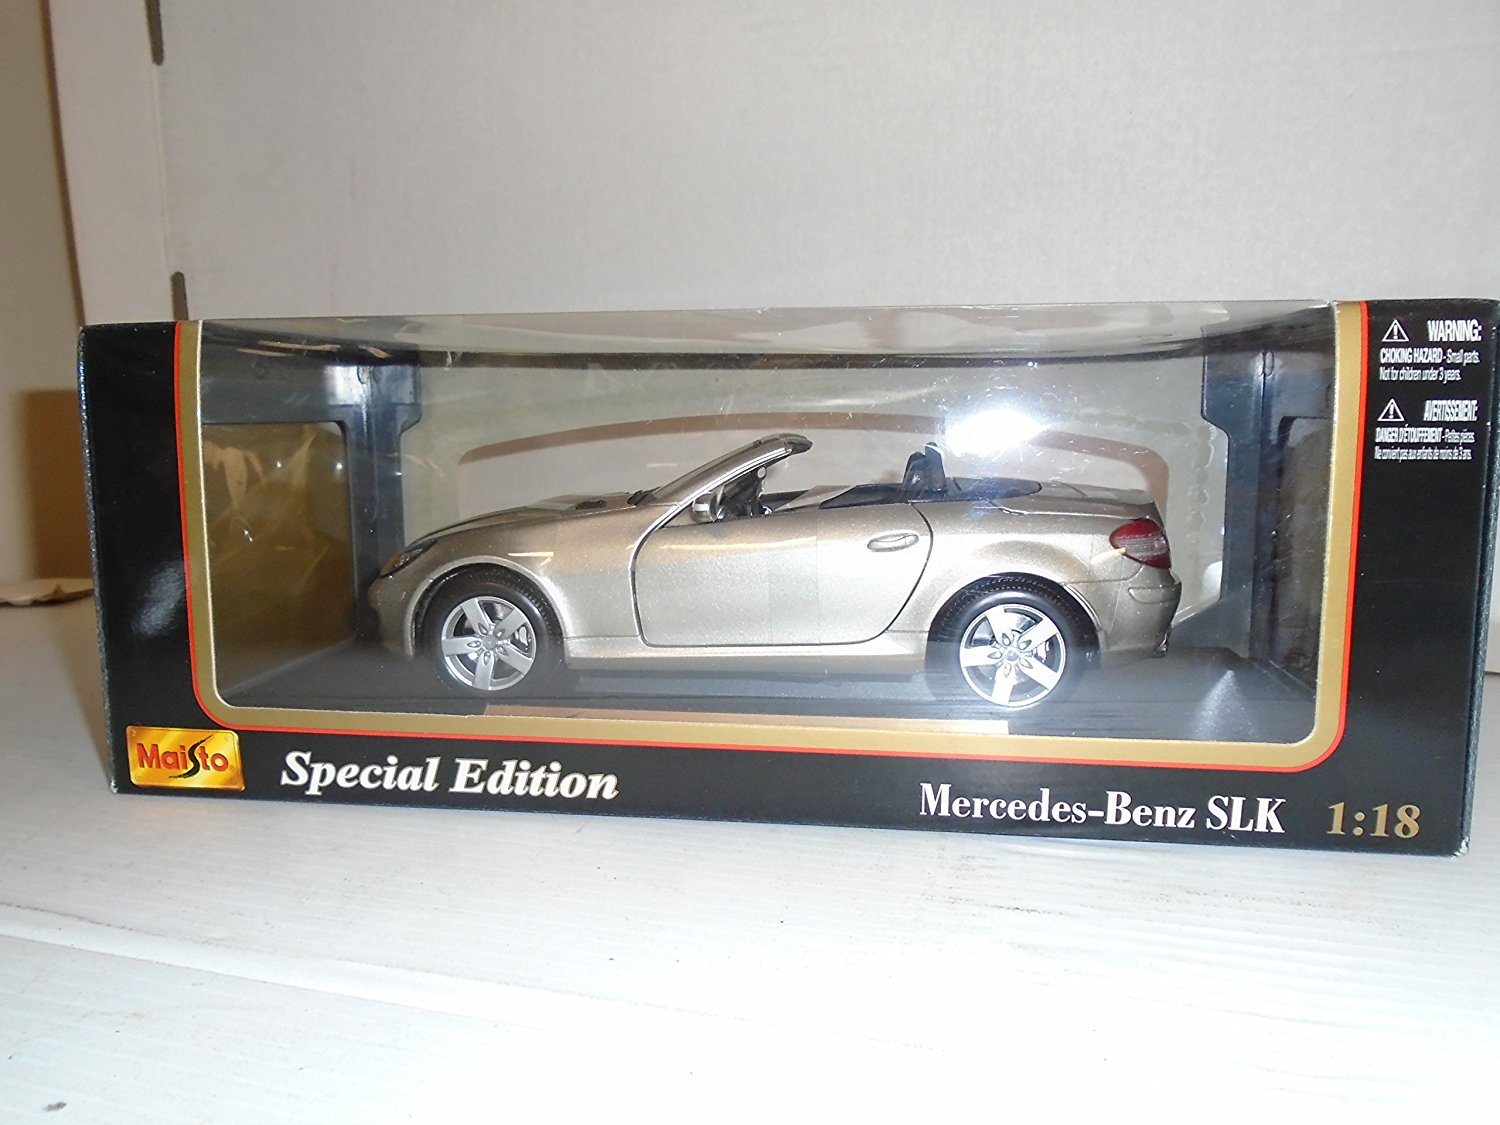 Maisto 1:18 scale Special Edition Mercedes Benz SLK Class Die Cast Metal